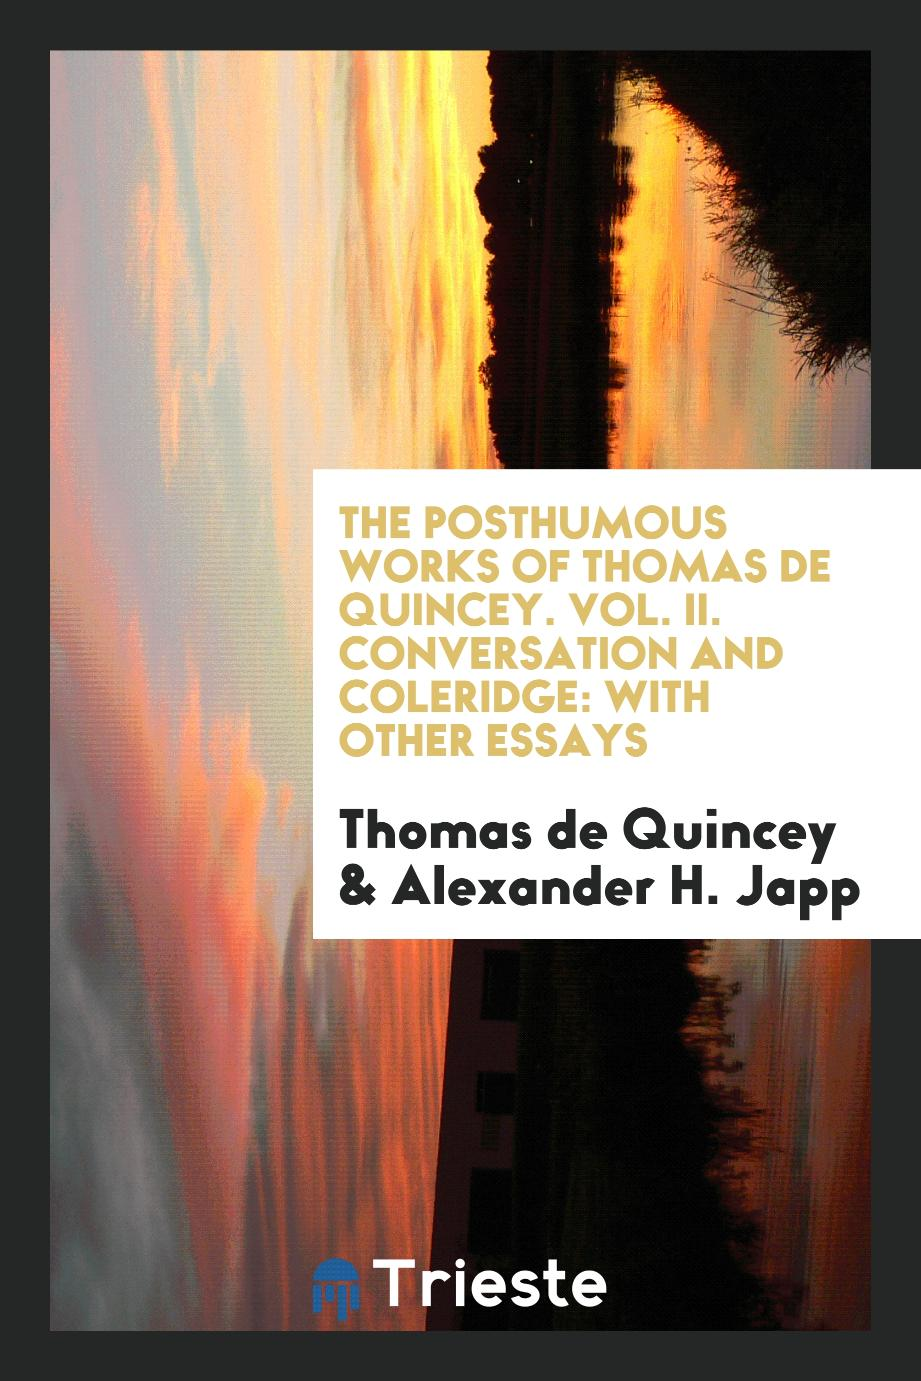 Thomas De Quincey, Alexander H. Japp - The Posthumous Works of Thomas de Quincey. Vol. II. Conversation and Coleridge: With Other Essays